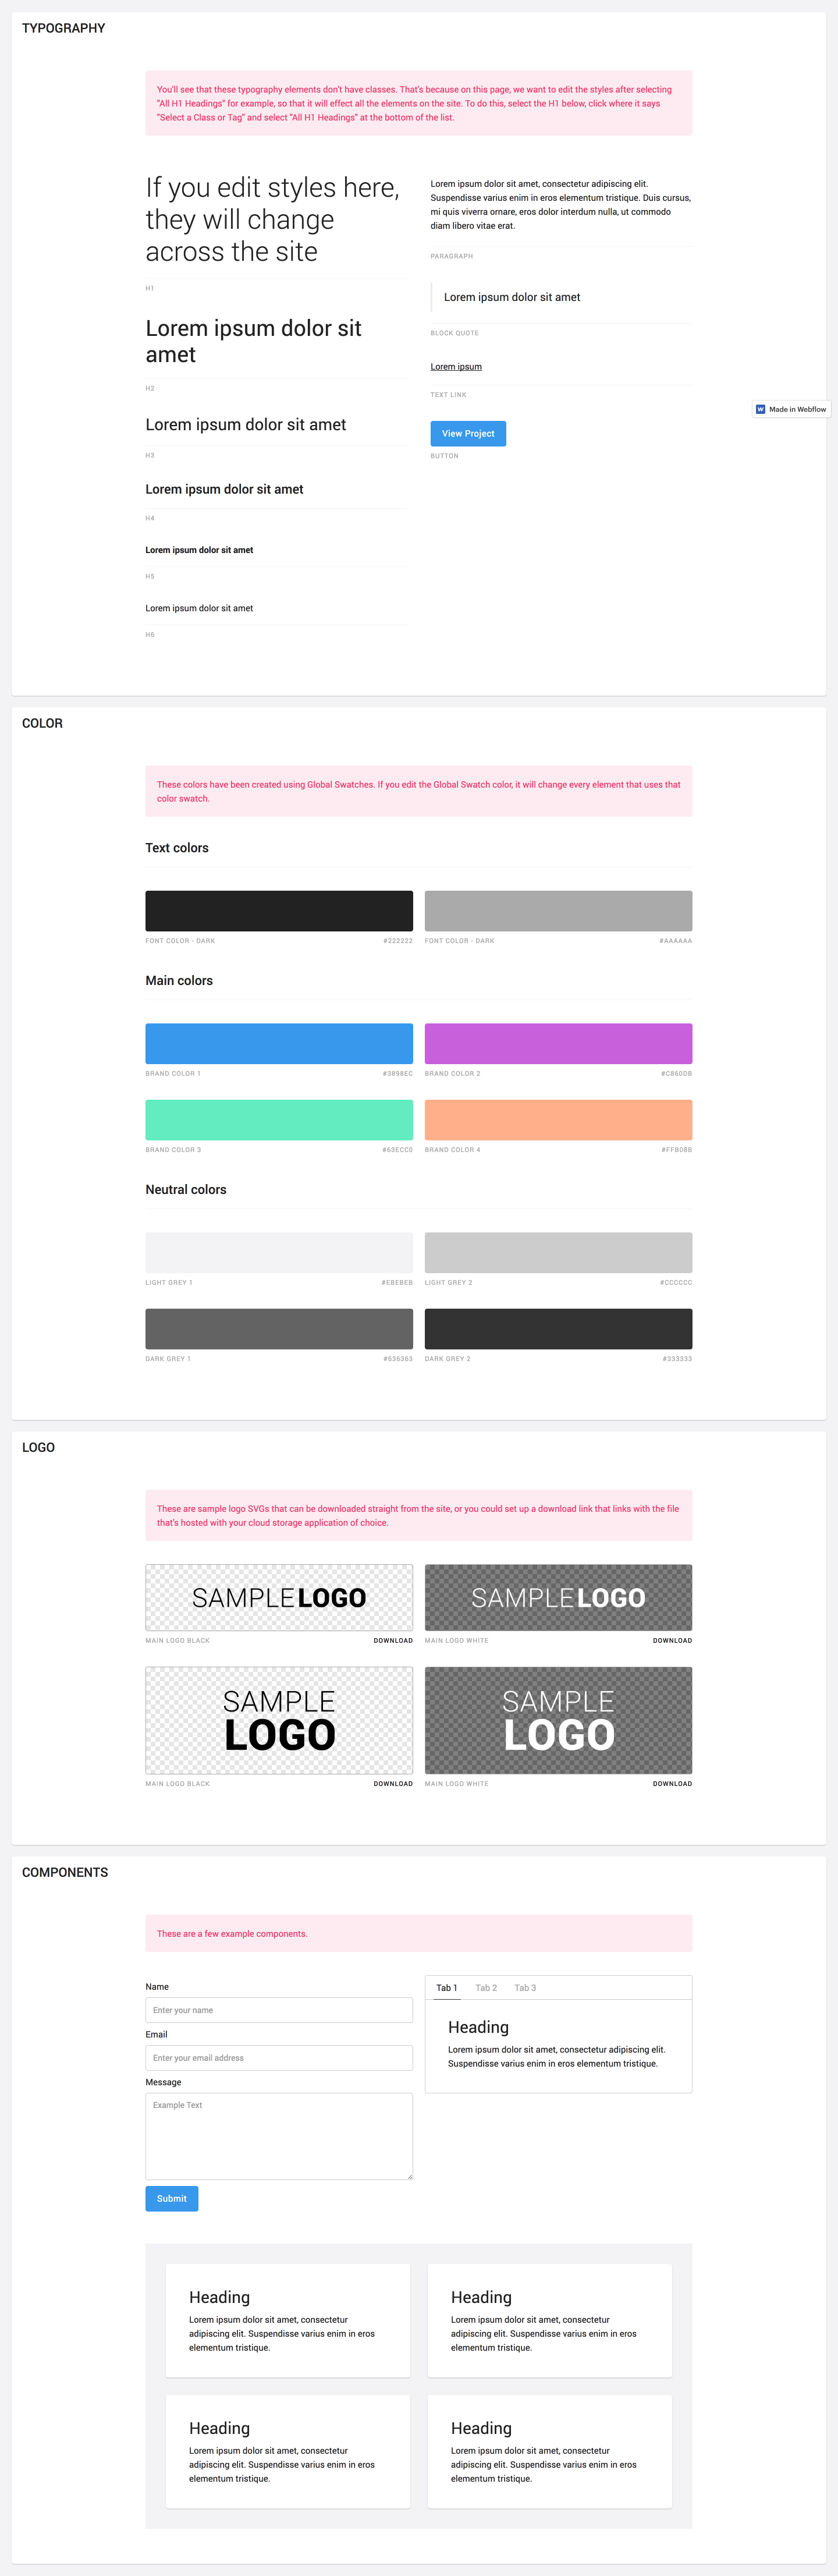 Living style guide template made in Webflow